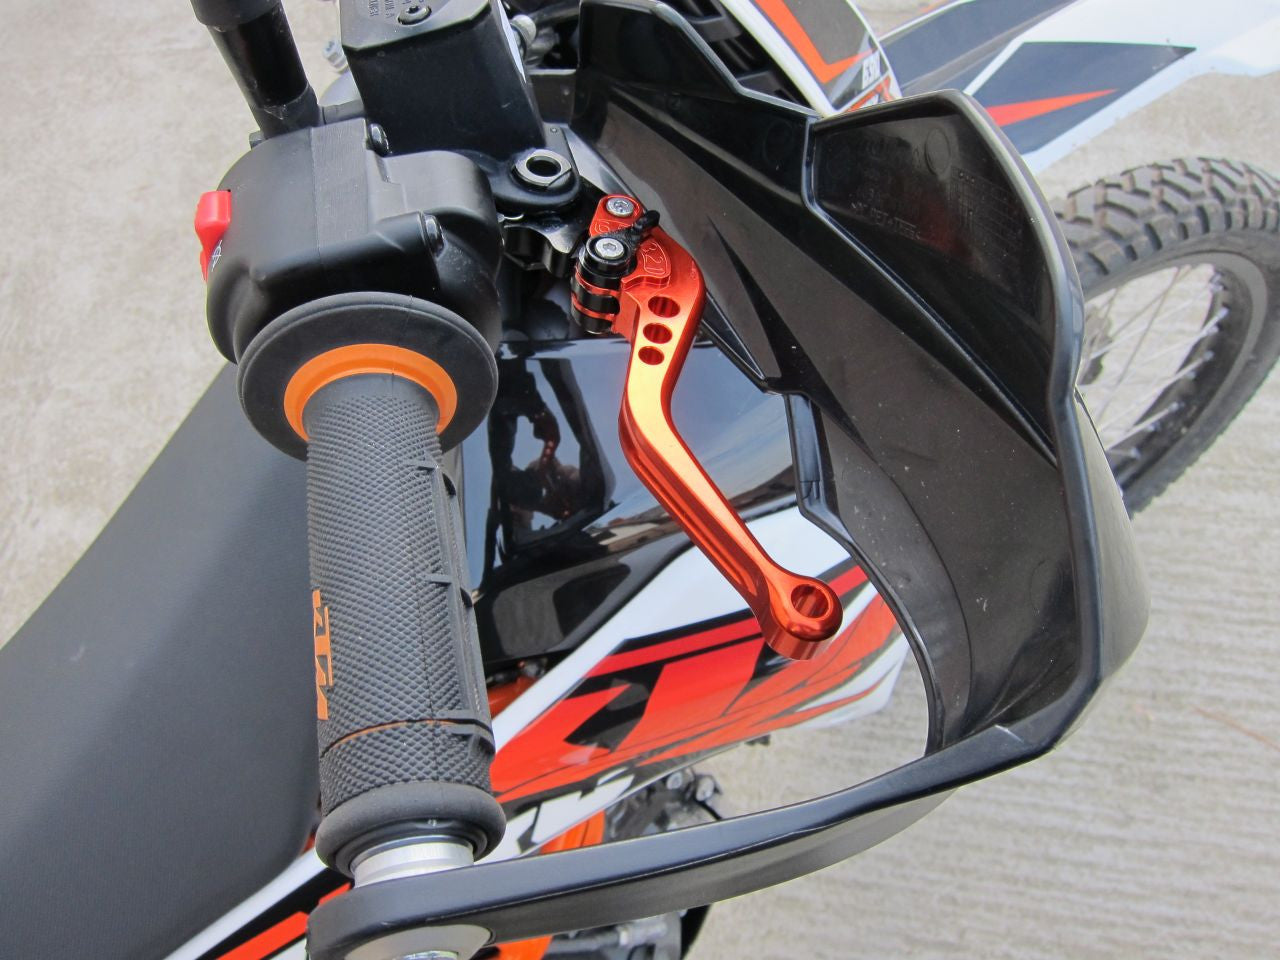 Aftermarket shorty clutch and brake levers for KTM 690 Enduro